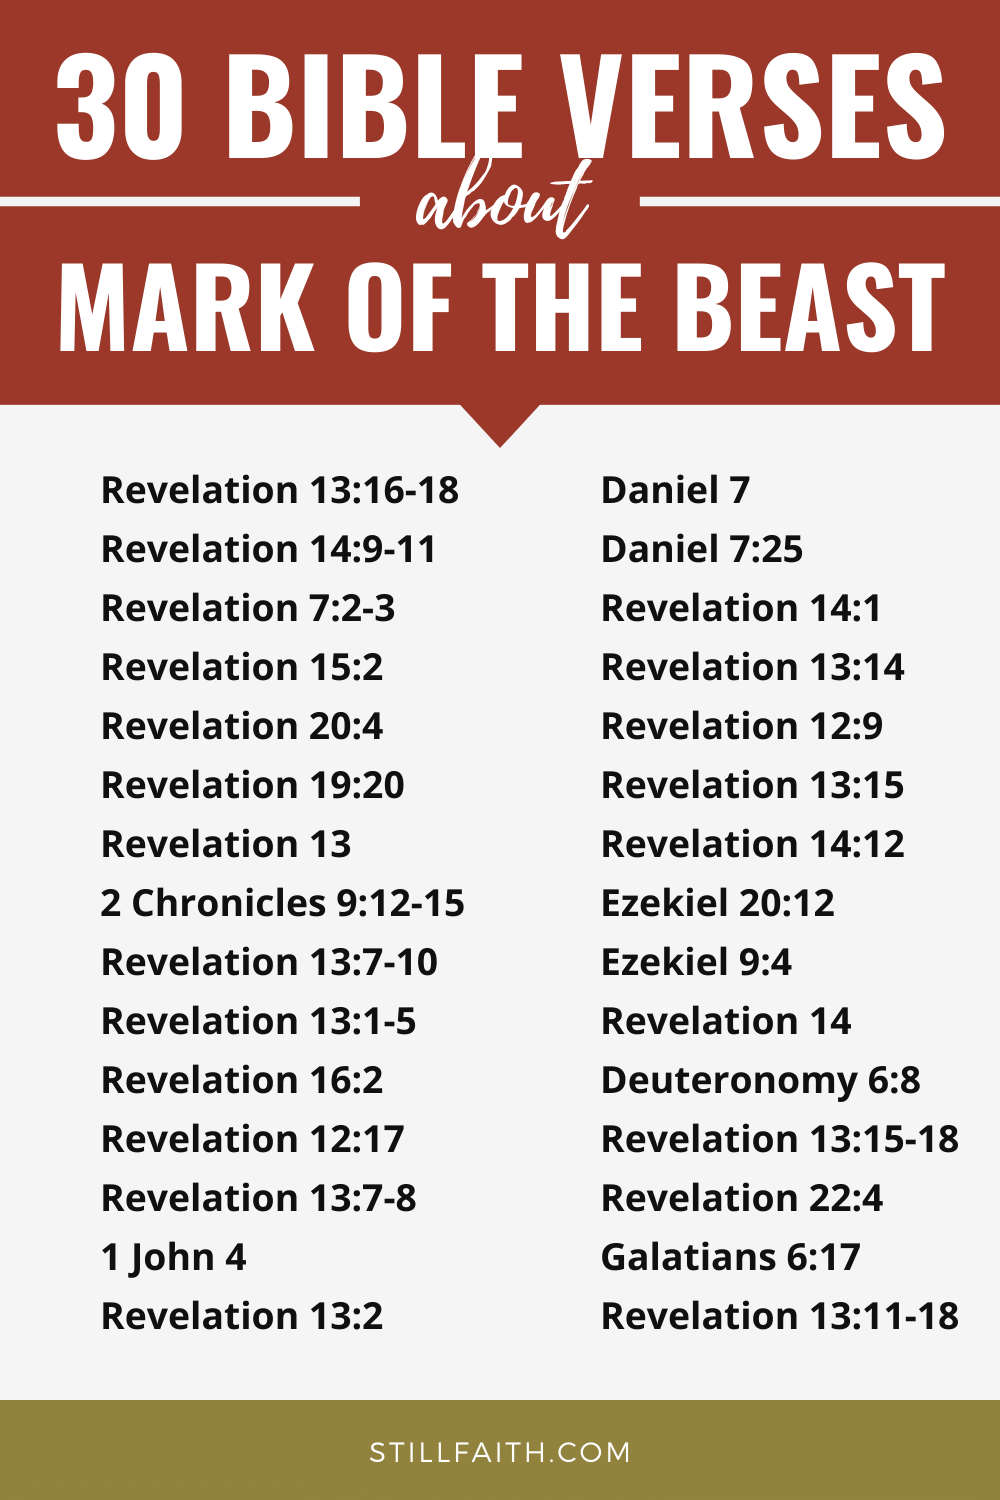 89 Bible Verses about the Mark of the Beast